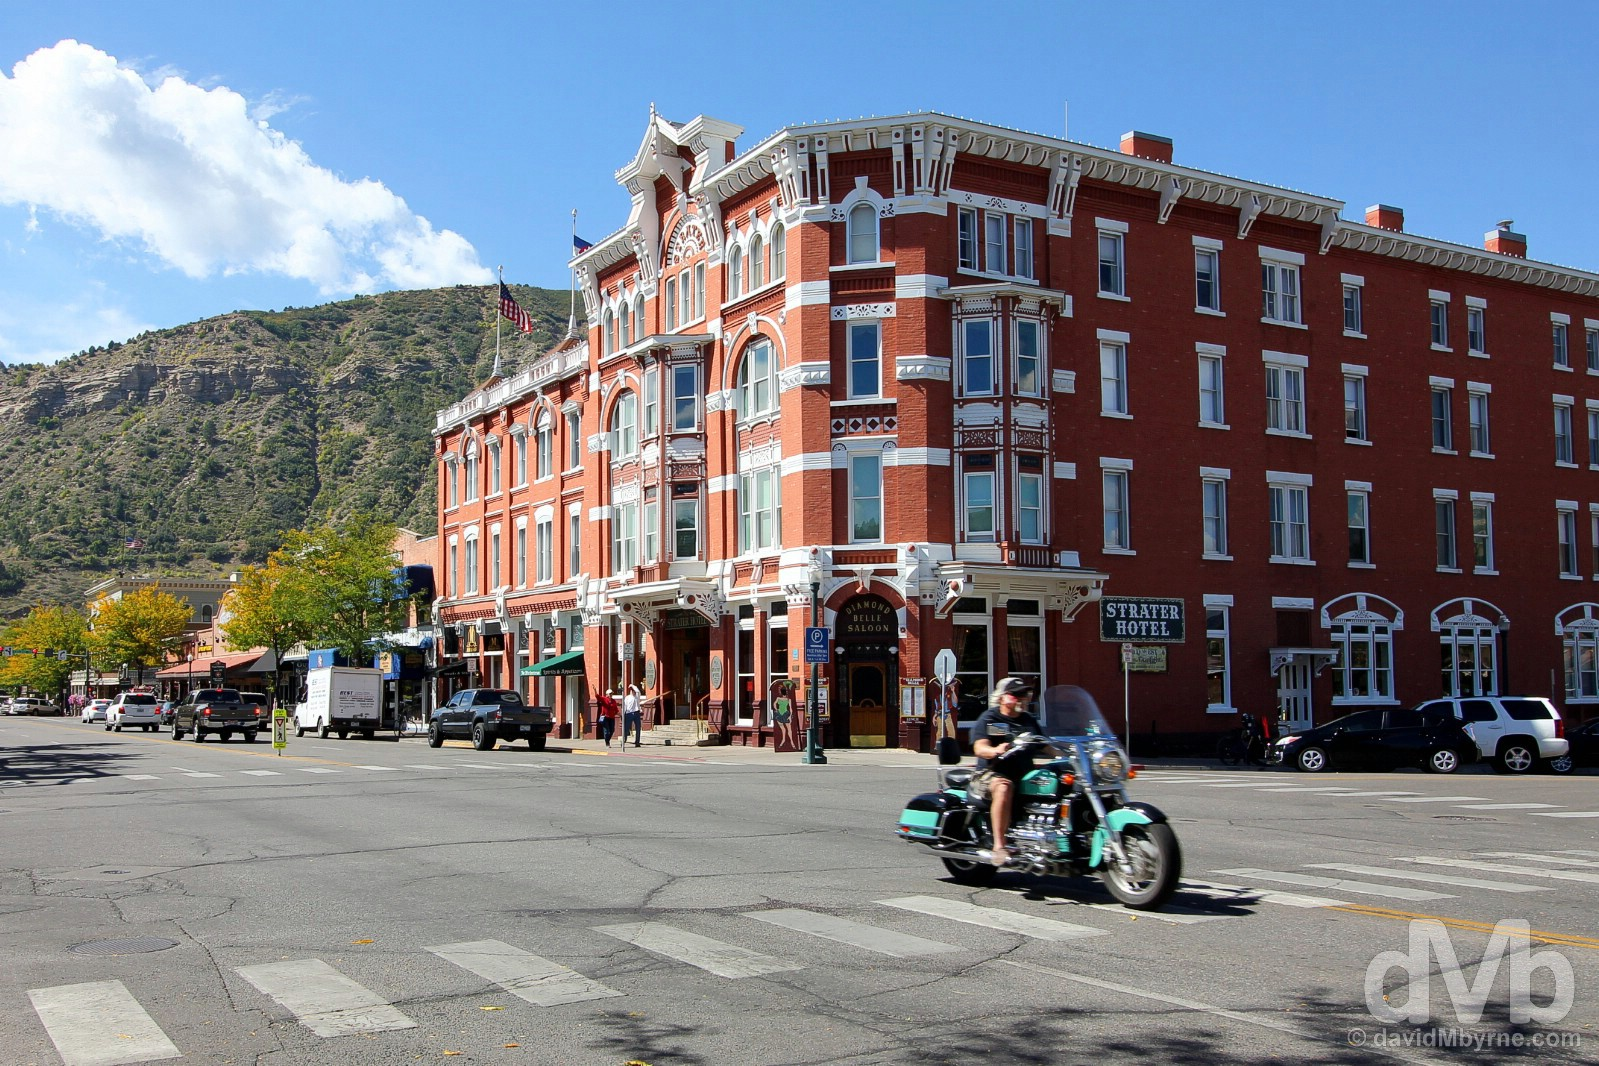 Main Avenue, Durango, Colorado. September 12, 2016.